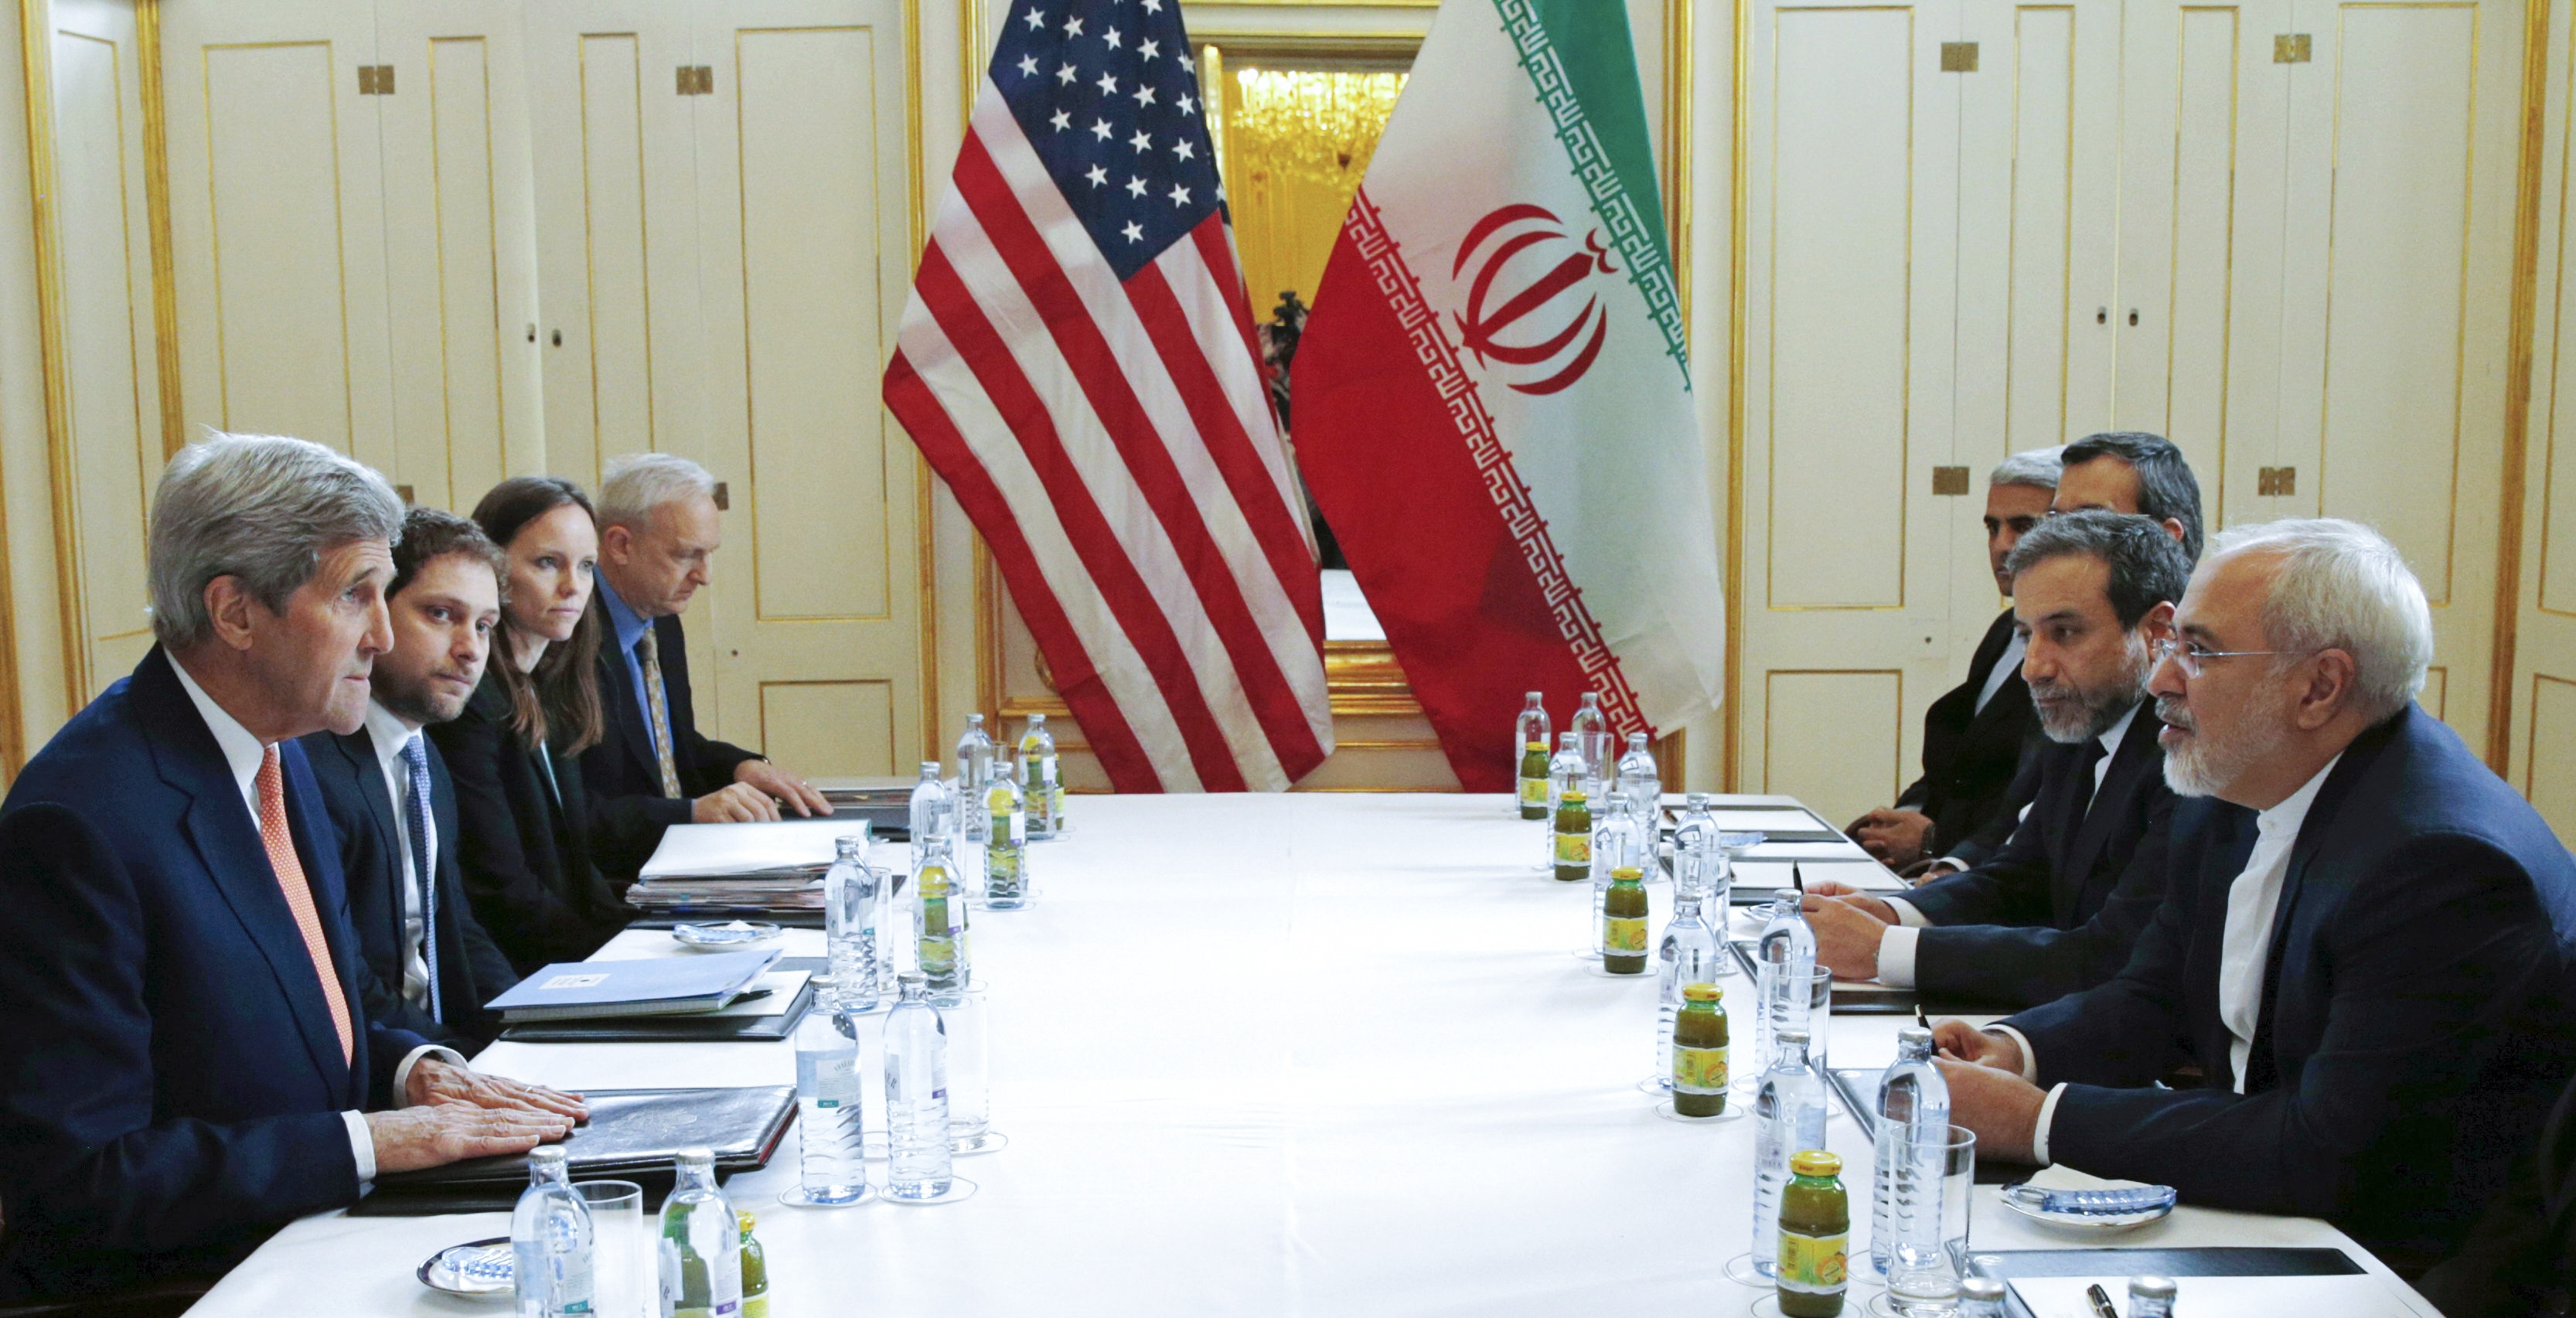 Secretary of State John Kerry, left, and Iran Foreign Minister Javad Zarif, right, worked out the final details of the nuclear accord Saturday in Vienna. (New York Times photo)